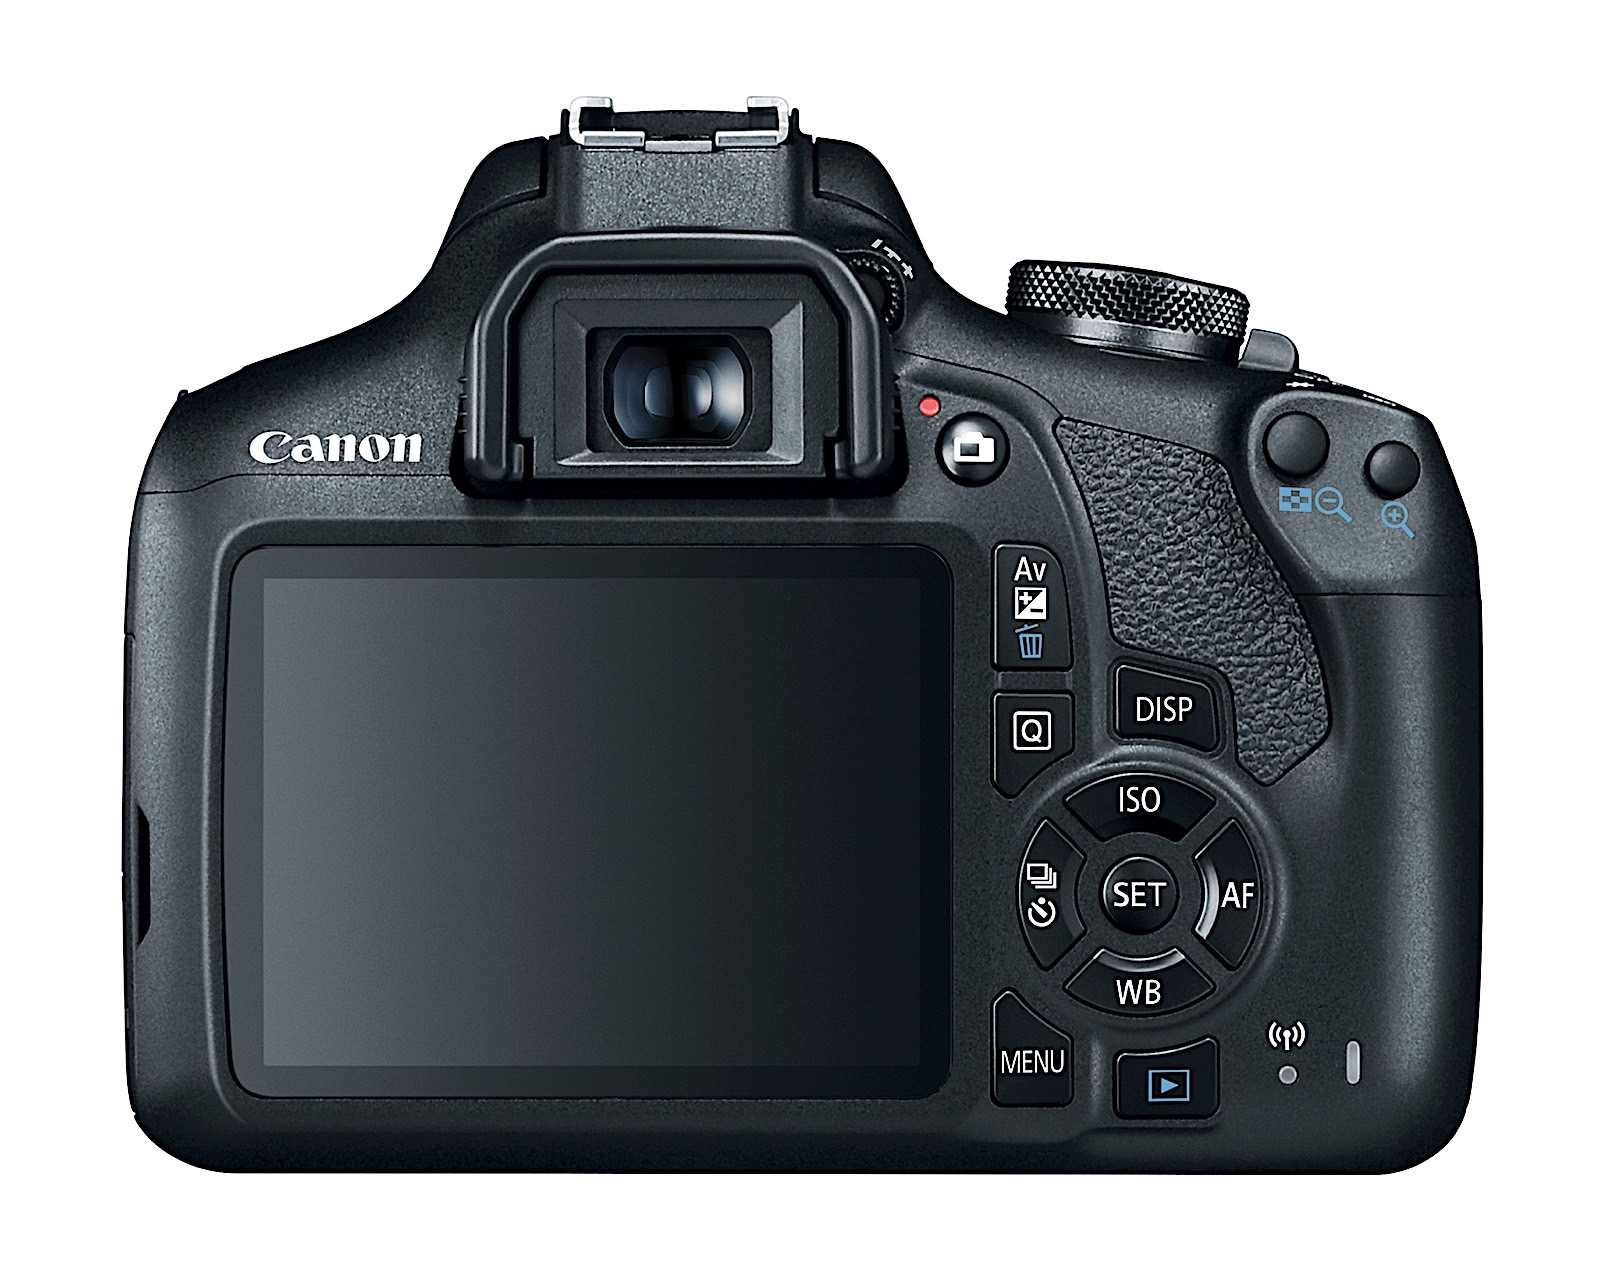 Canon's entry-level Rebel T7 DSLR targets social media users | DeviceDaily.com